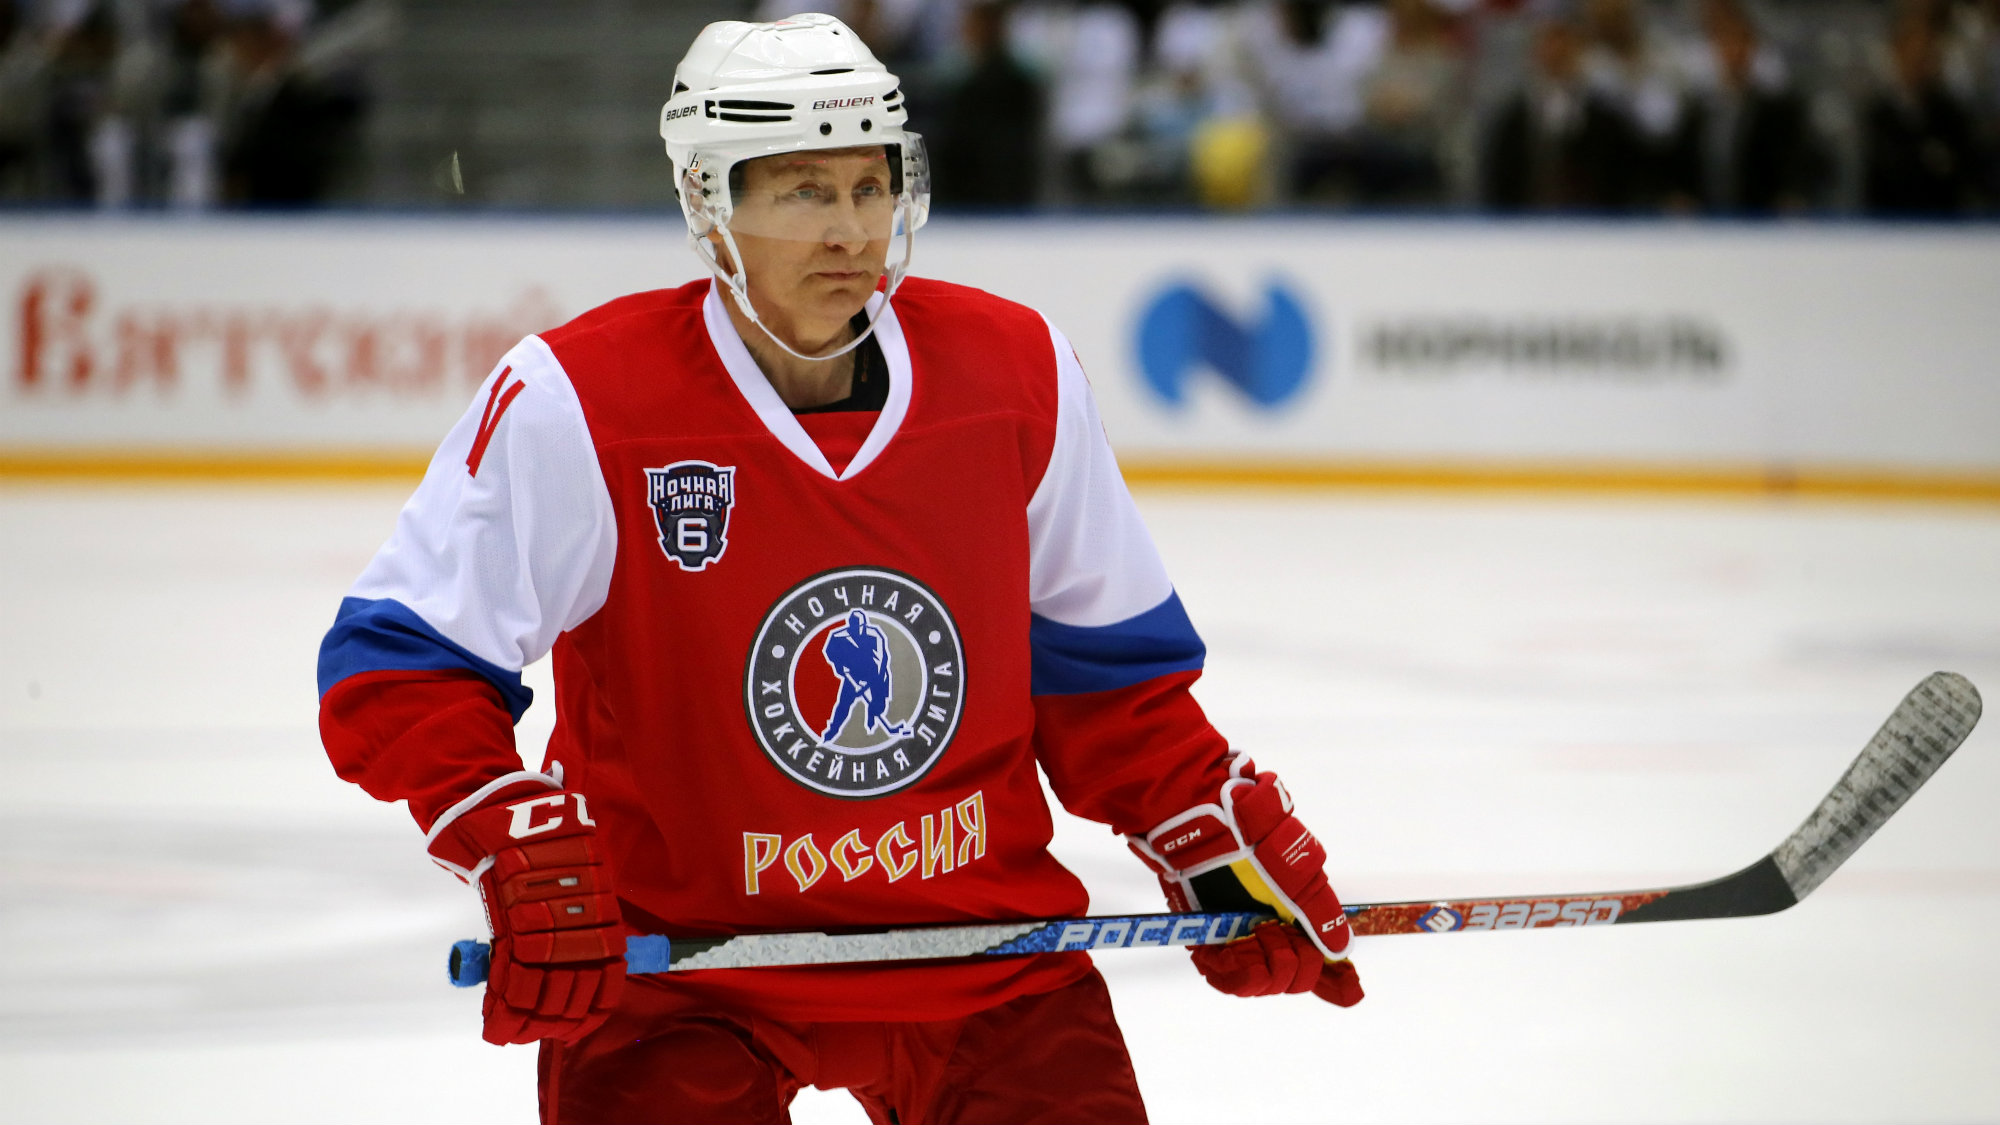 Vladimir Putin Is Having A Late Career Resurgence In The Hockey Rink Quartz